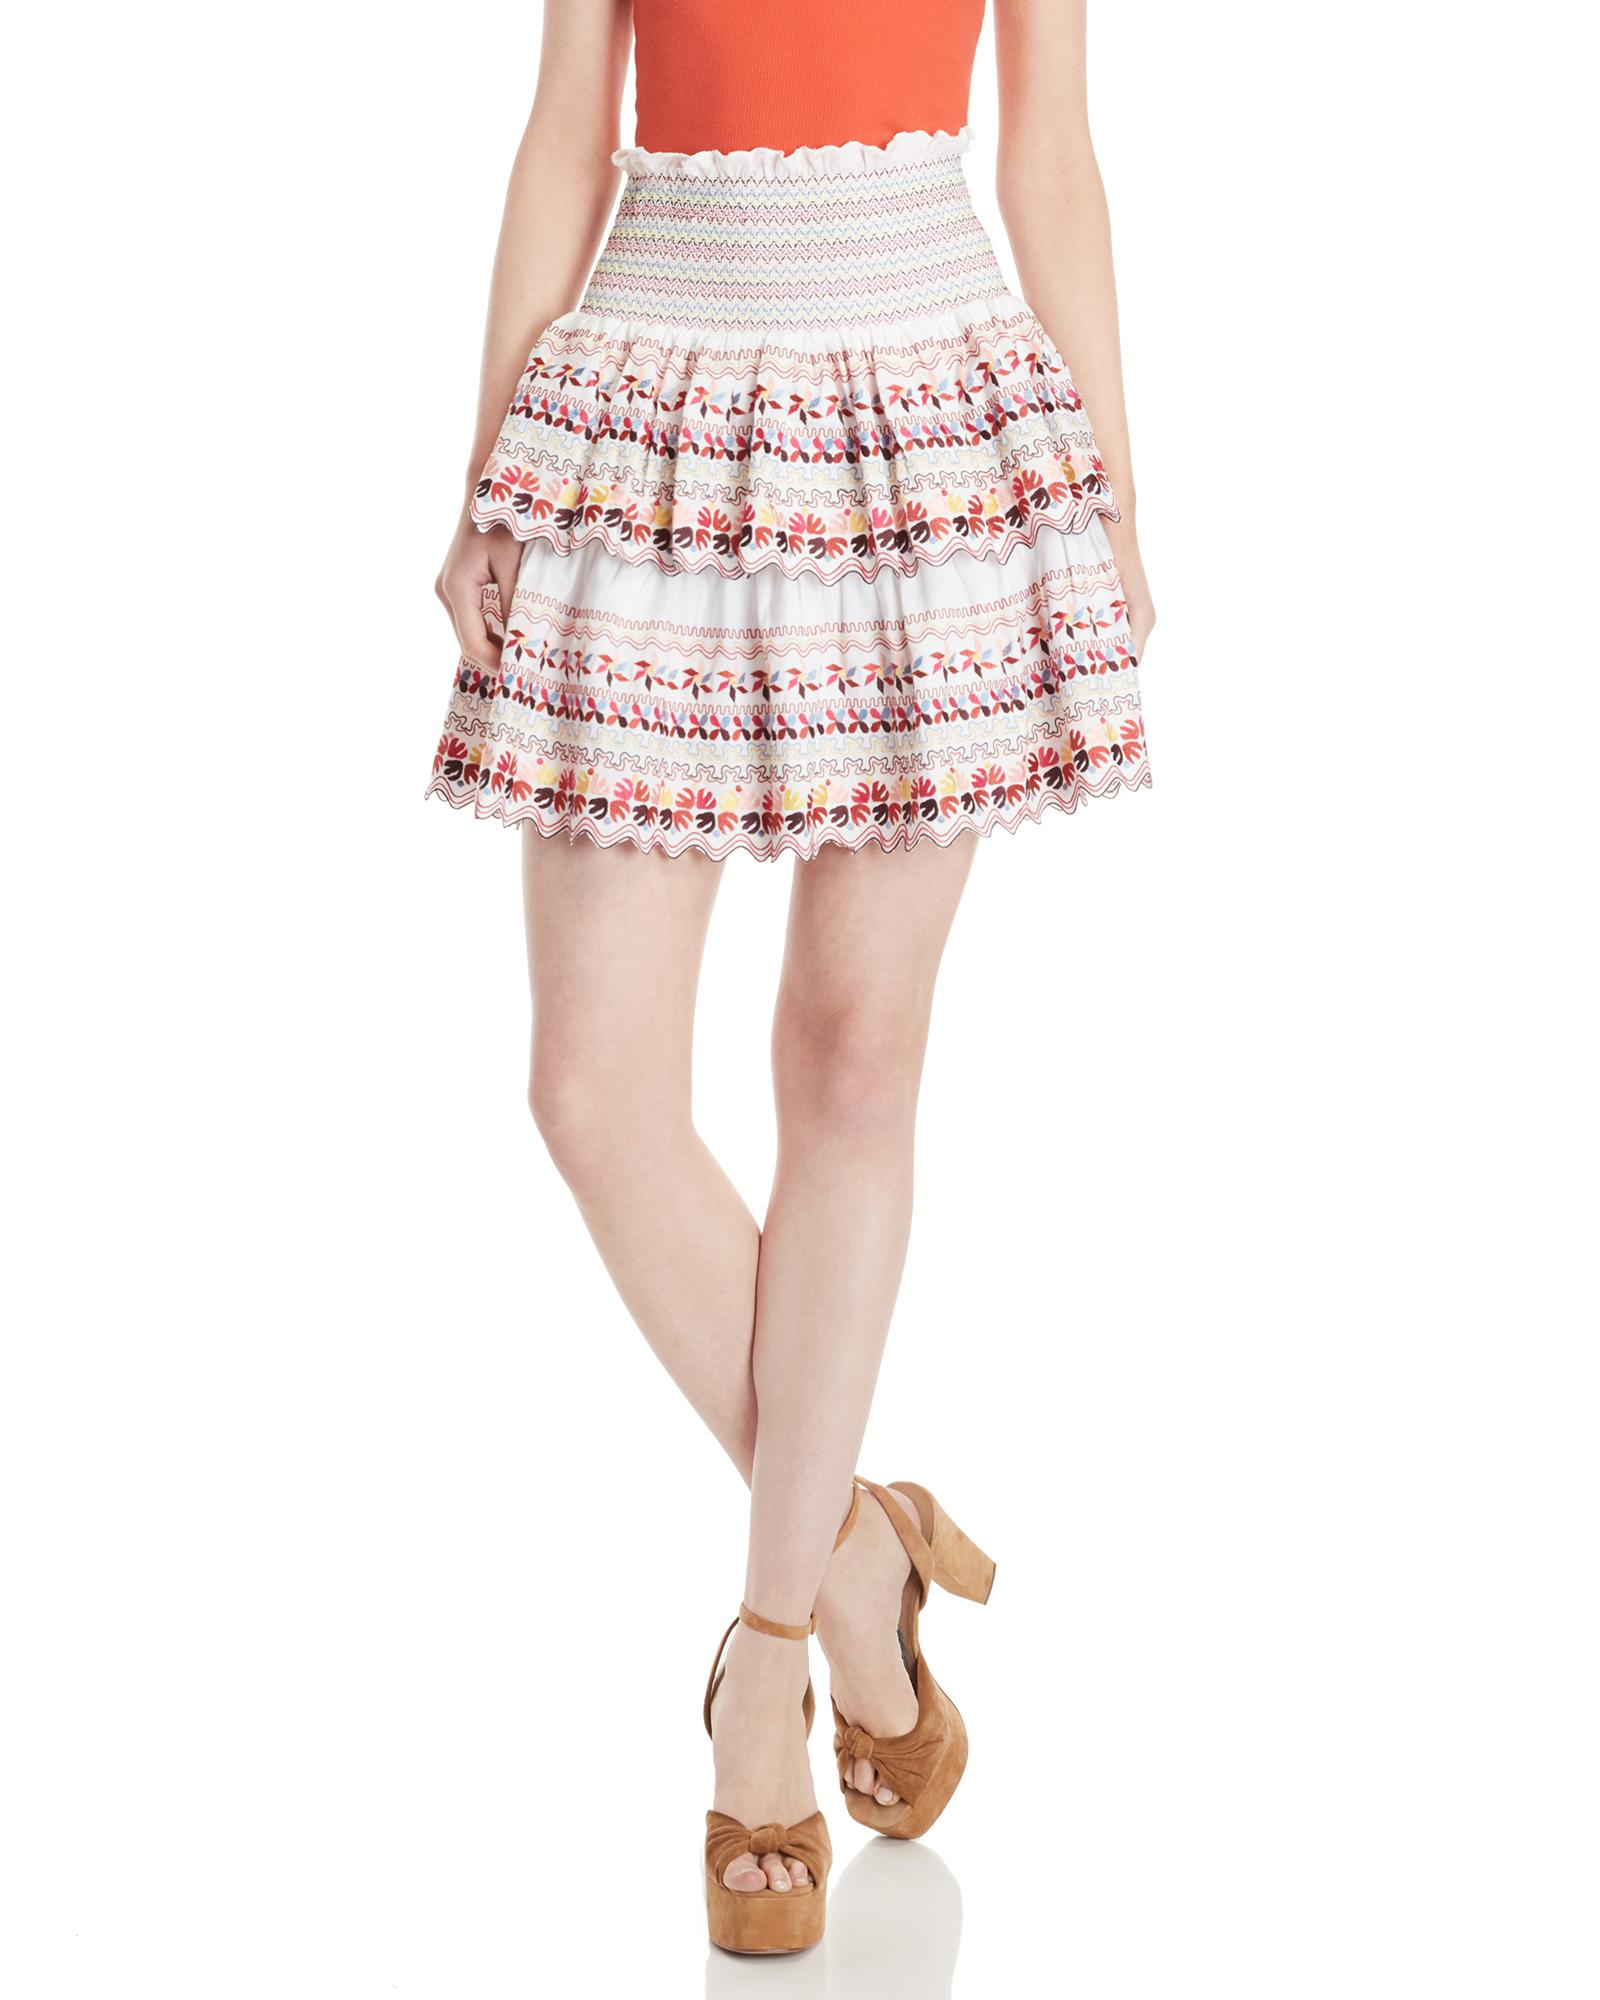 c8988cf047 Lyst - AMUR Tiered Embroidered Mini Skirt in White - Save 39%